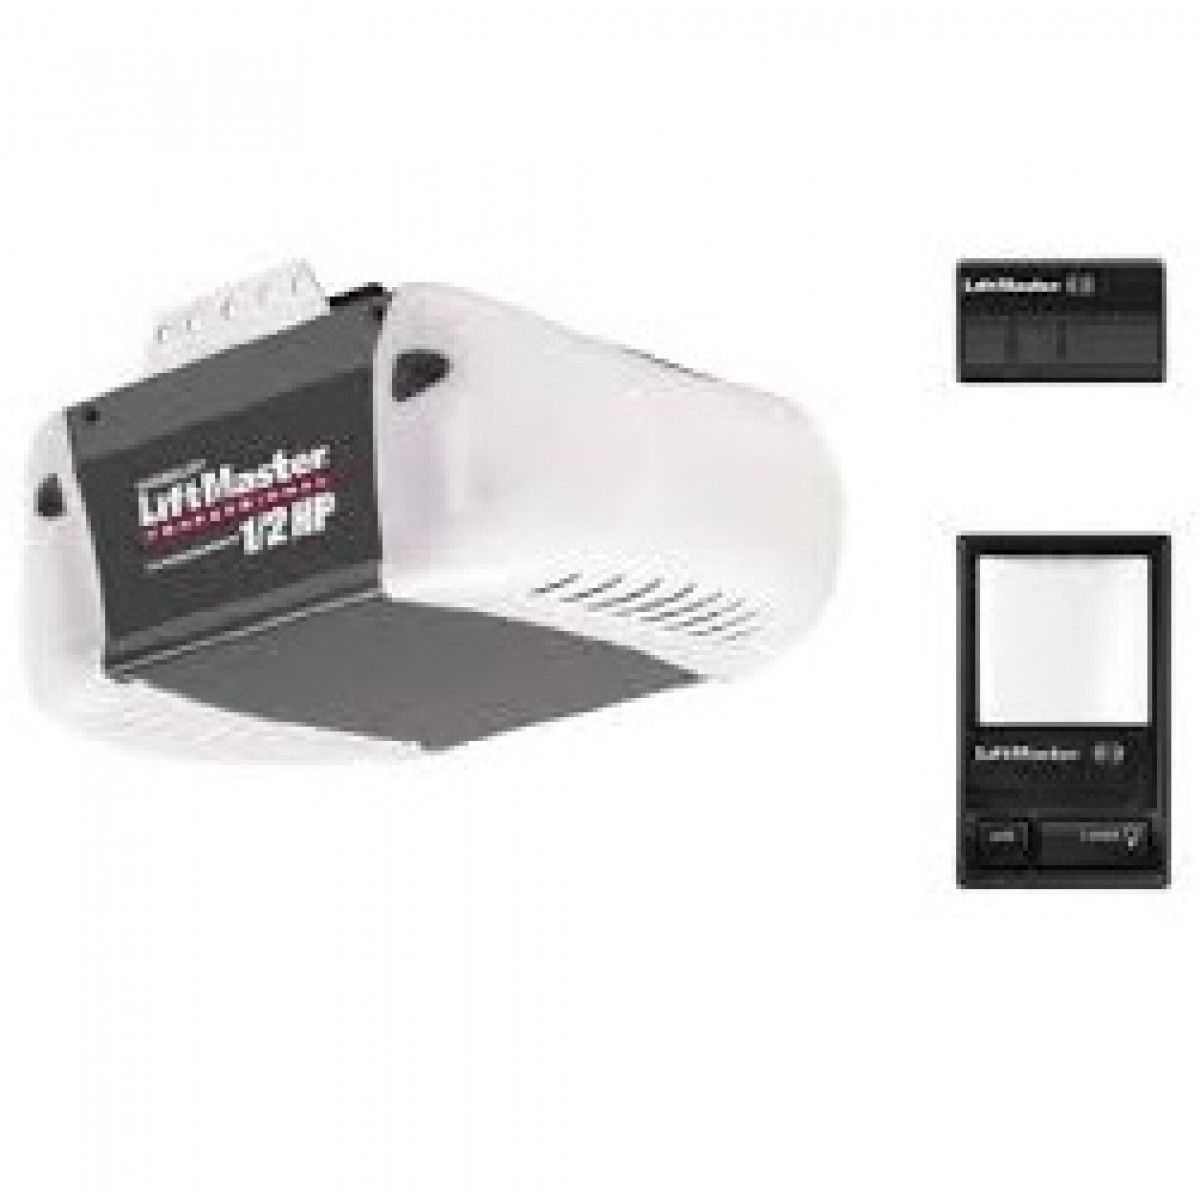 Liftmaster 3240 Premium Series 1 2 Hp Ac Screw Drive Garage Door Opener Liftmaster Garage Door Opener Liftmaster Garage Door Opener